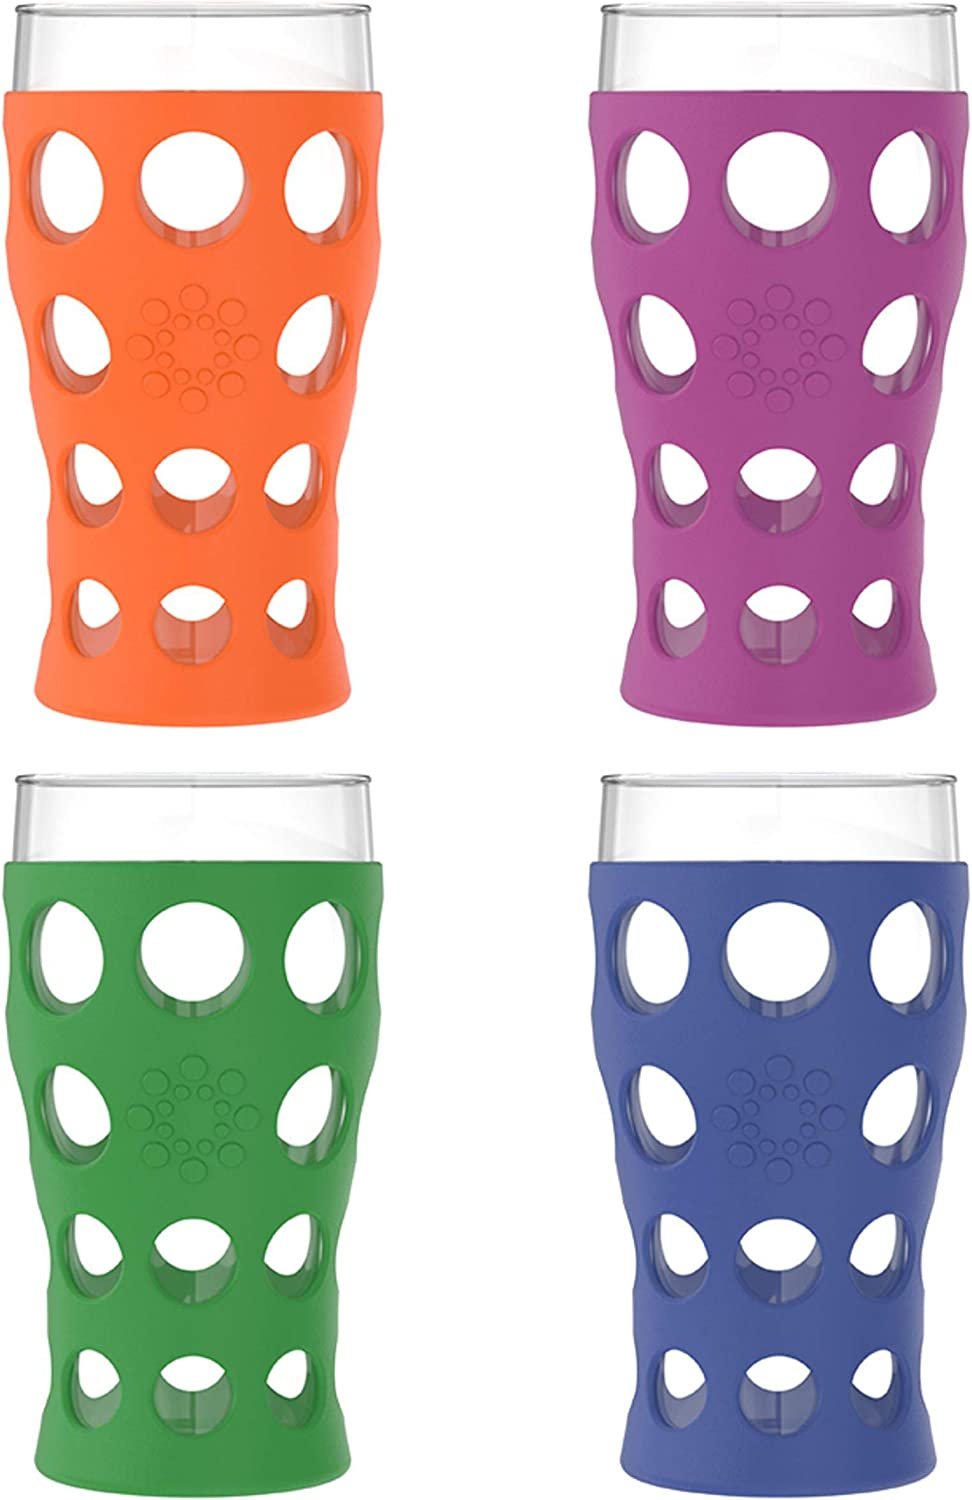 Lifefactory 20-Ounce BPA-Free Indoor/Outdoor Protective Silicone Sleeve Beverage Glass, 4-Pack, Orange, Grass Green, Cobalt, Huckleberry